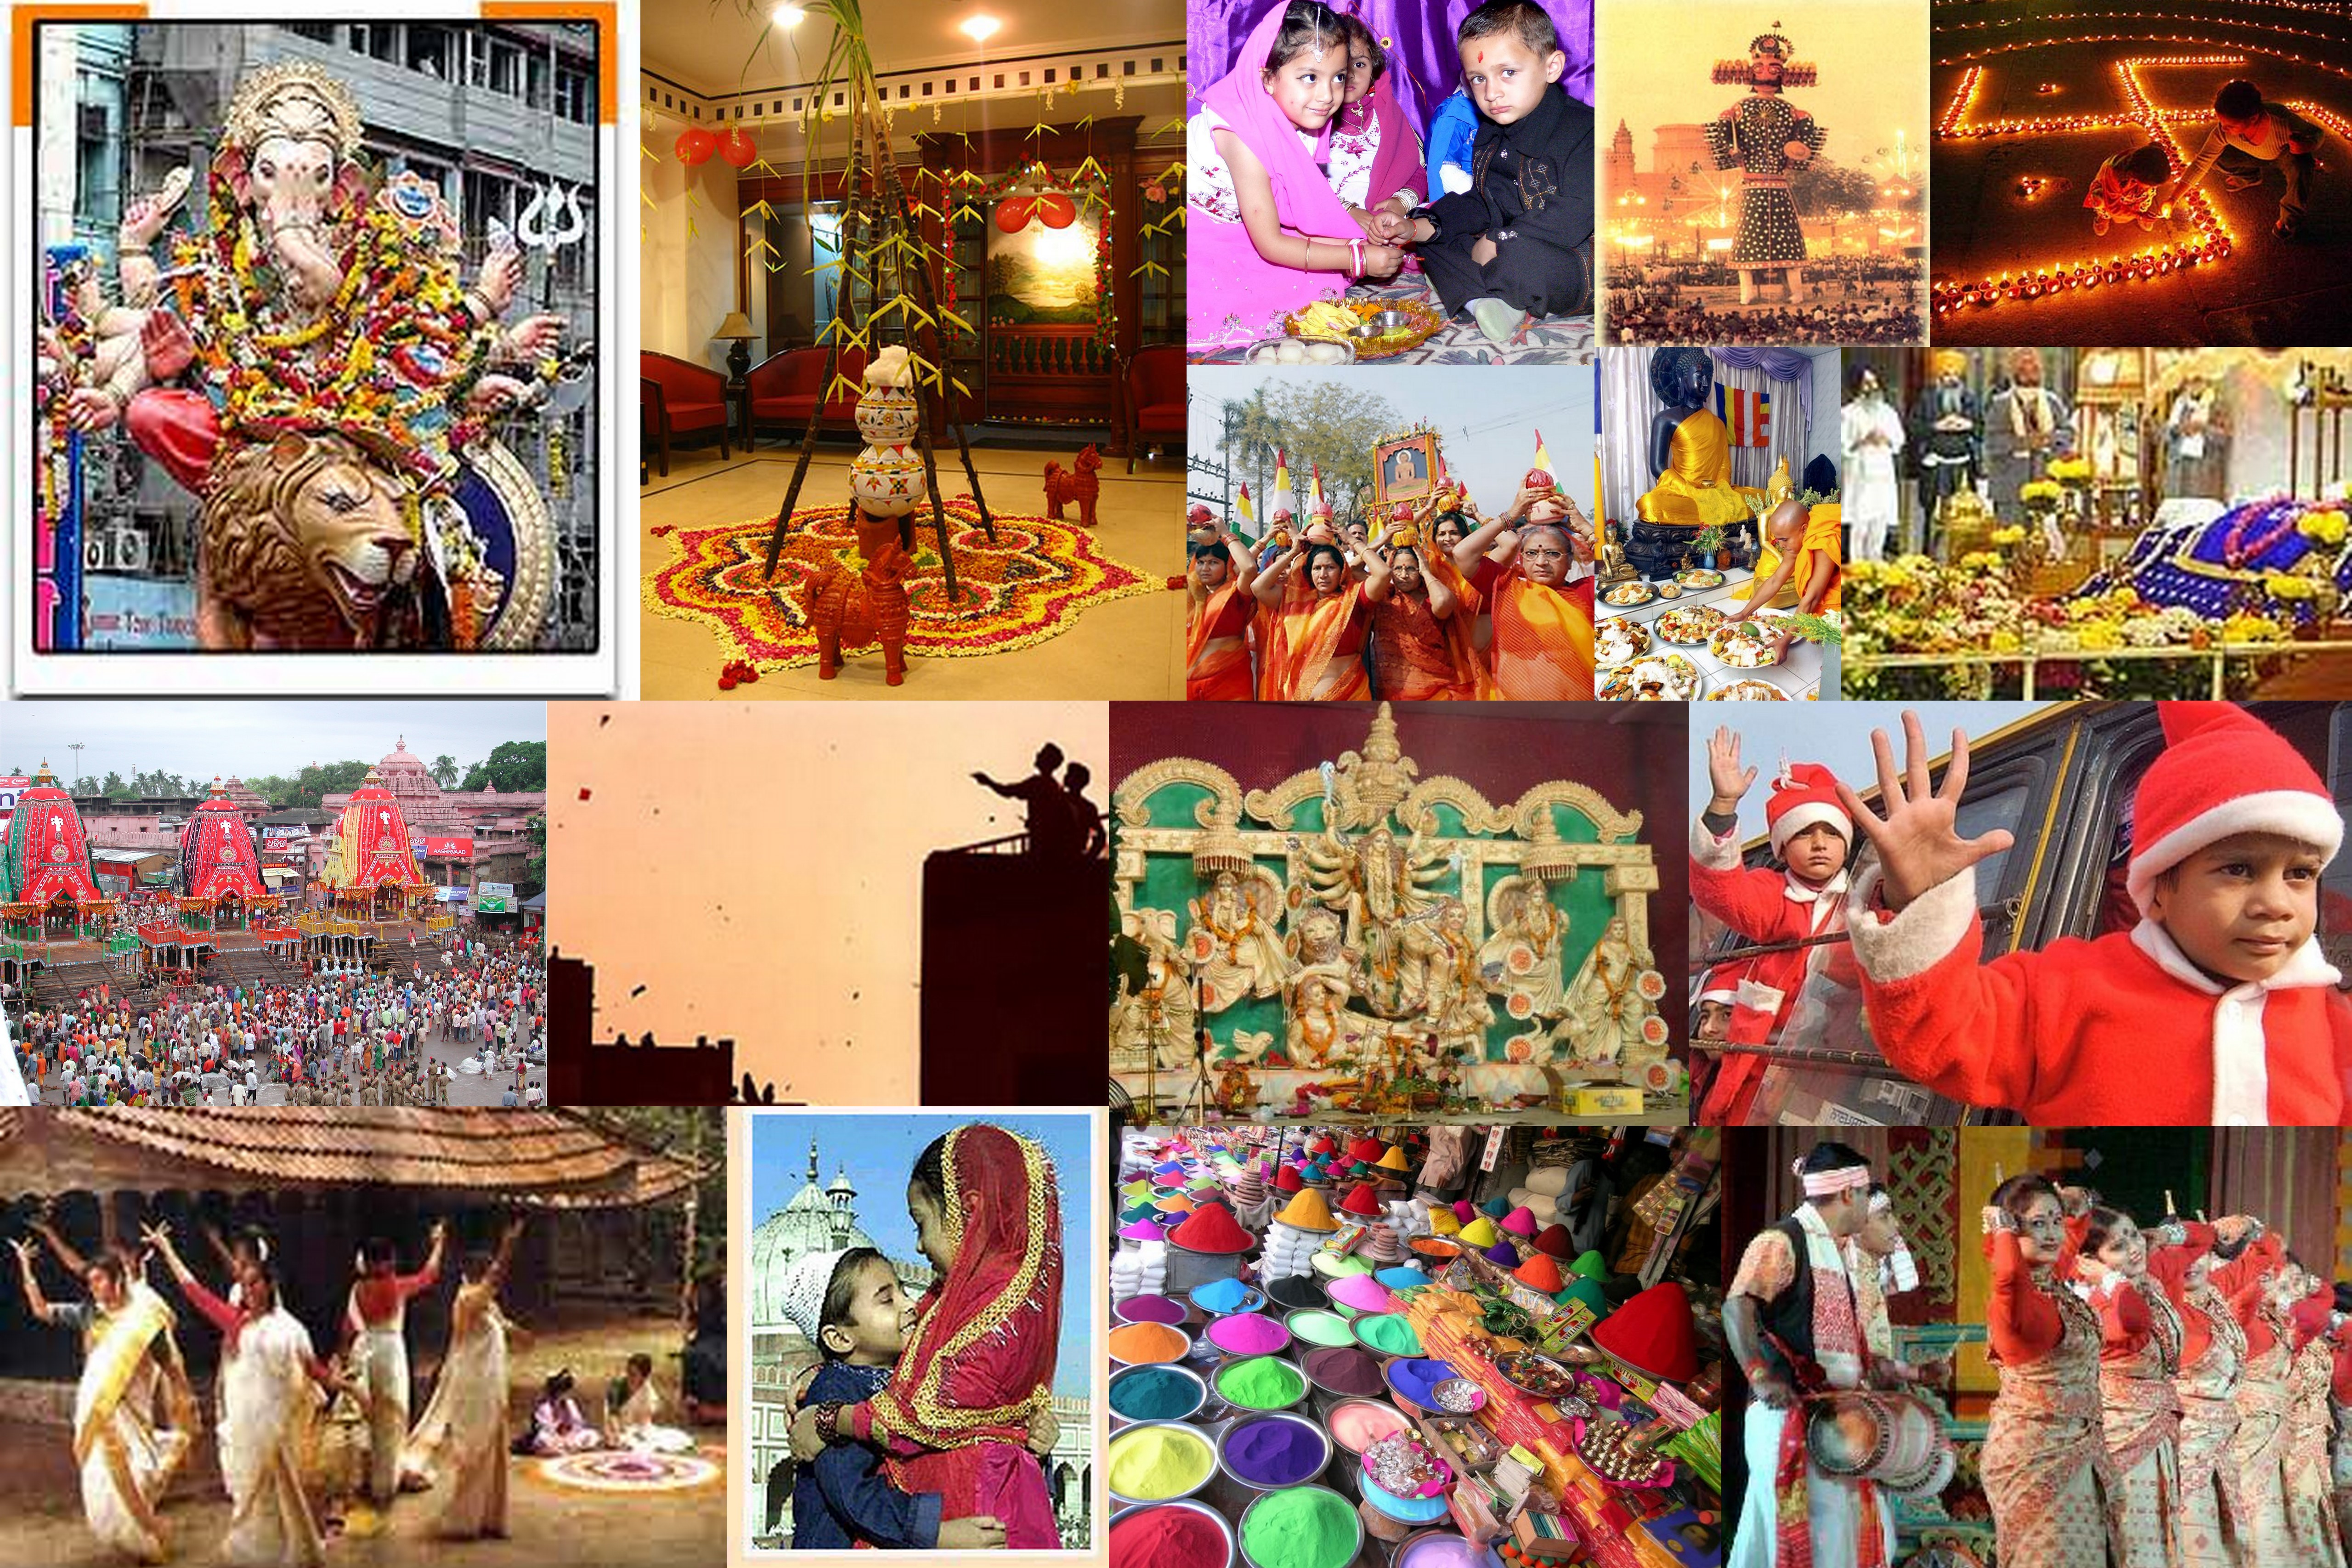 an overview of the hindu culture Culture & people with nearly 1 billion citizens, india is the second most populous nation in the worldit is impossible to speak of any one indian culture, although there are deep cultural continuities that tie its people together.